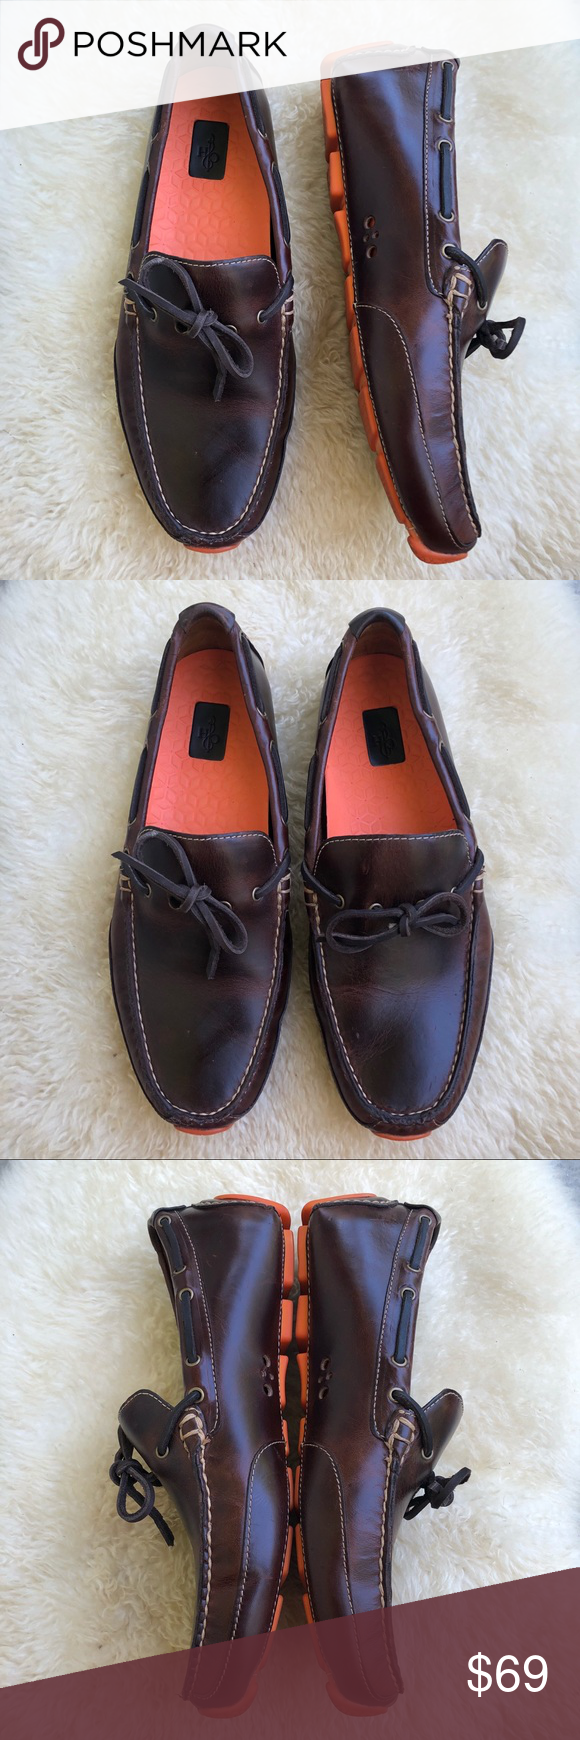 8d02e8298a8 Coke Haan moto grand camp moc toe loafers Dark chestnut brown leather. Cole  Haan Shoes Loafers   Slip-Ons